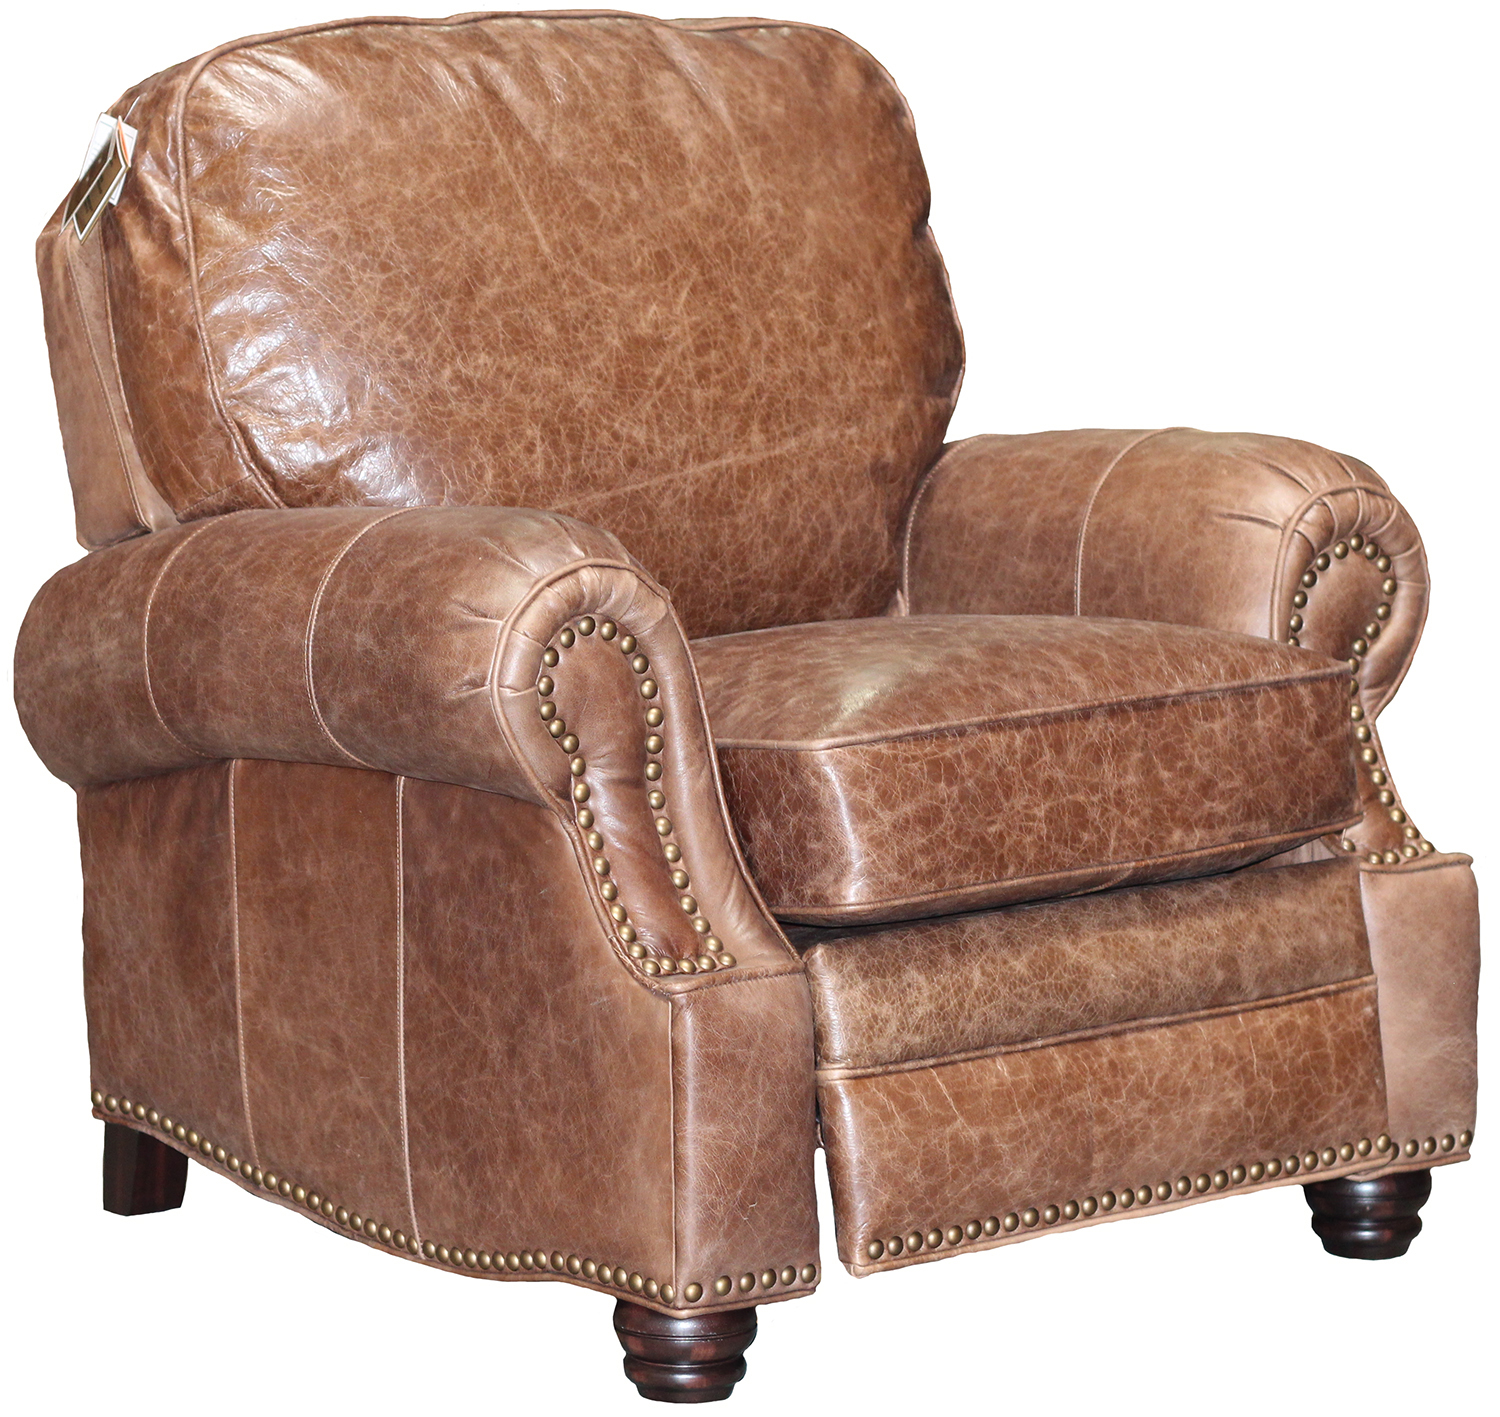 Barcalounger Longhorn Ii Leather Recliner Chair Leather